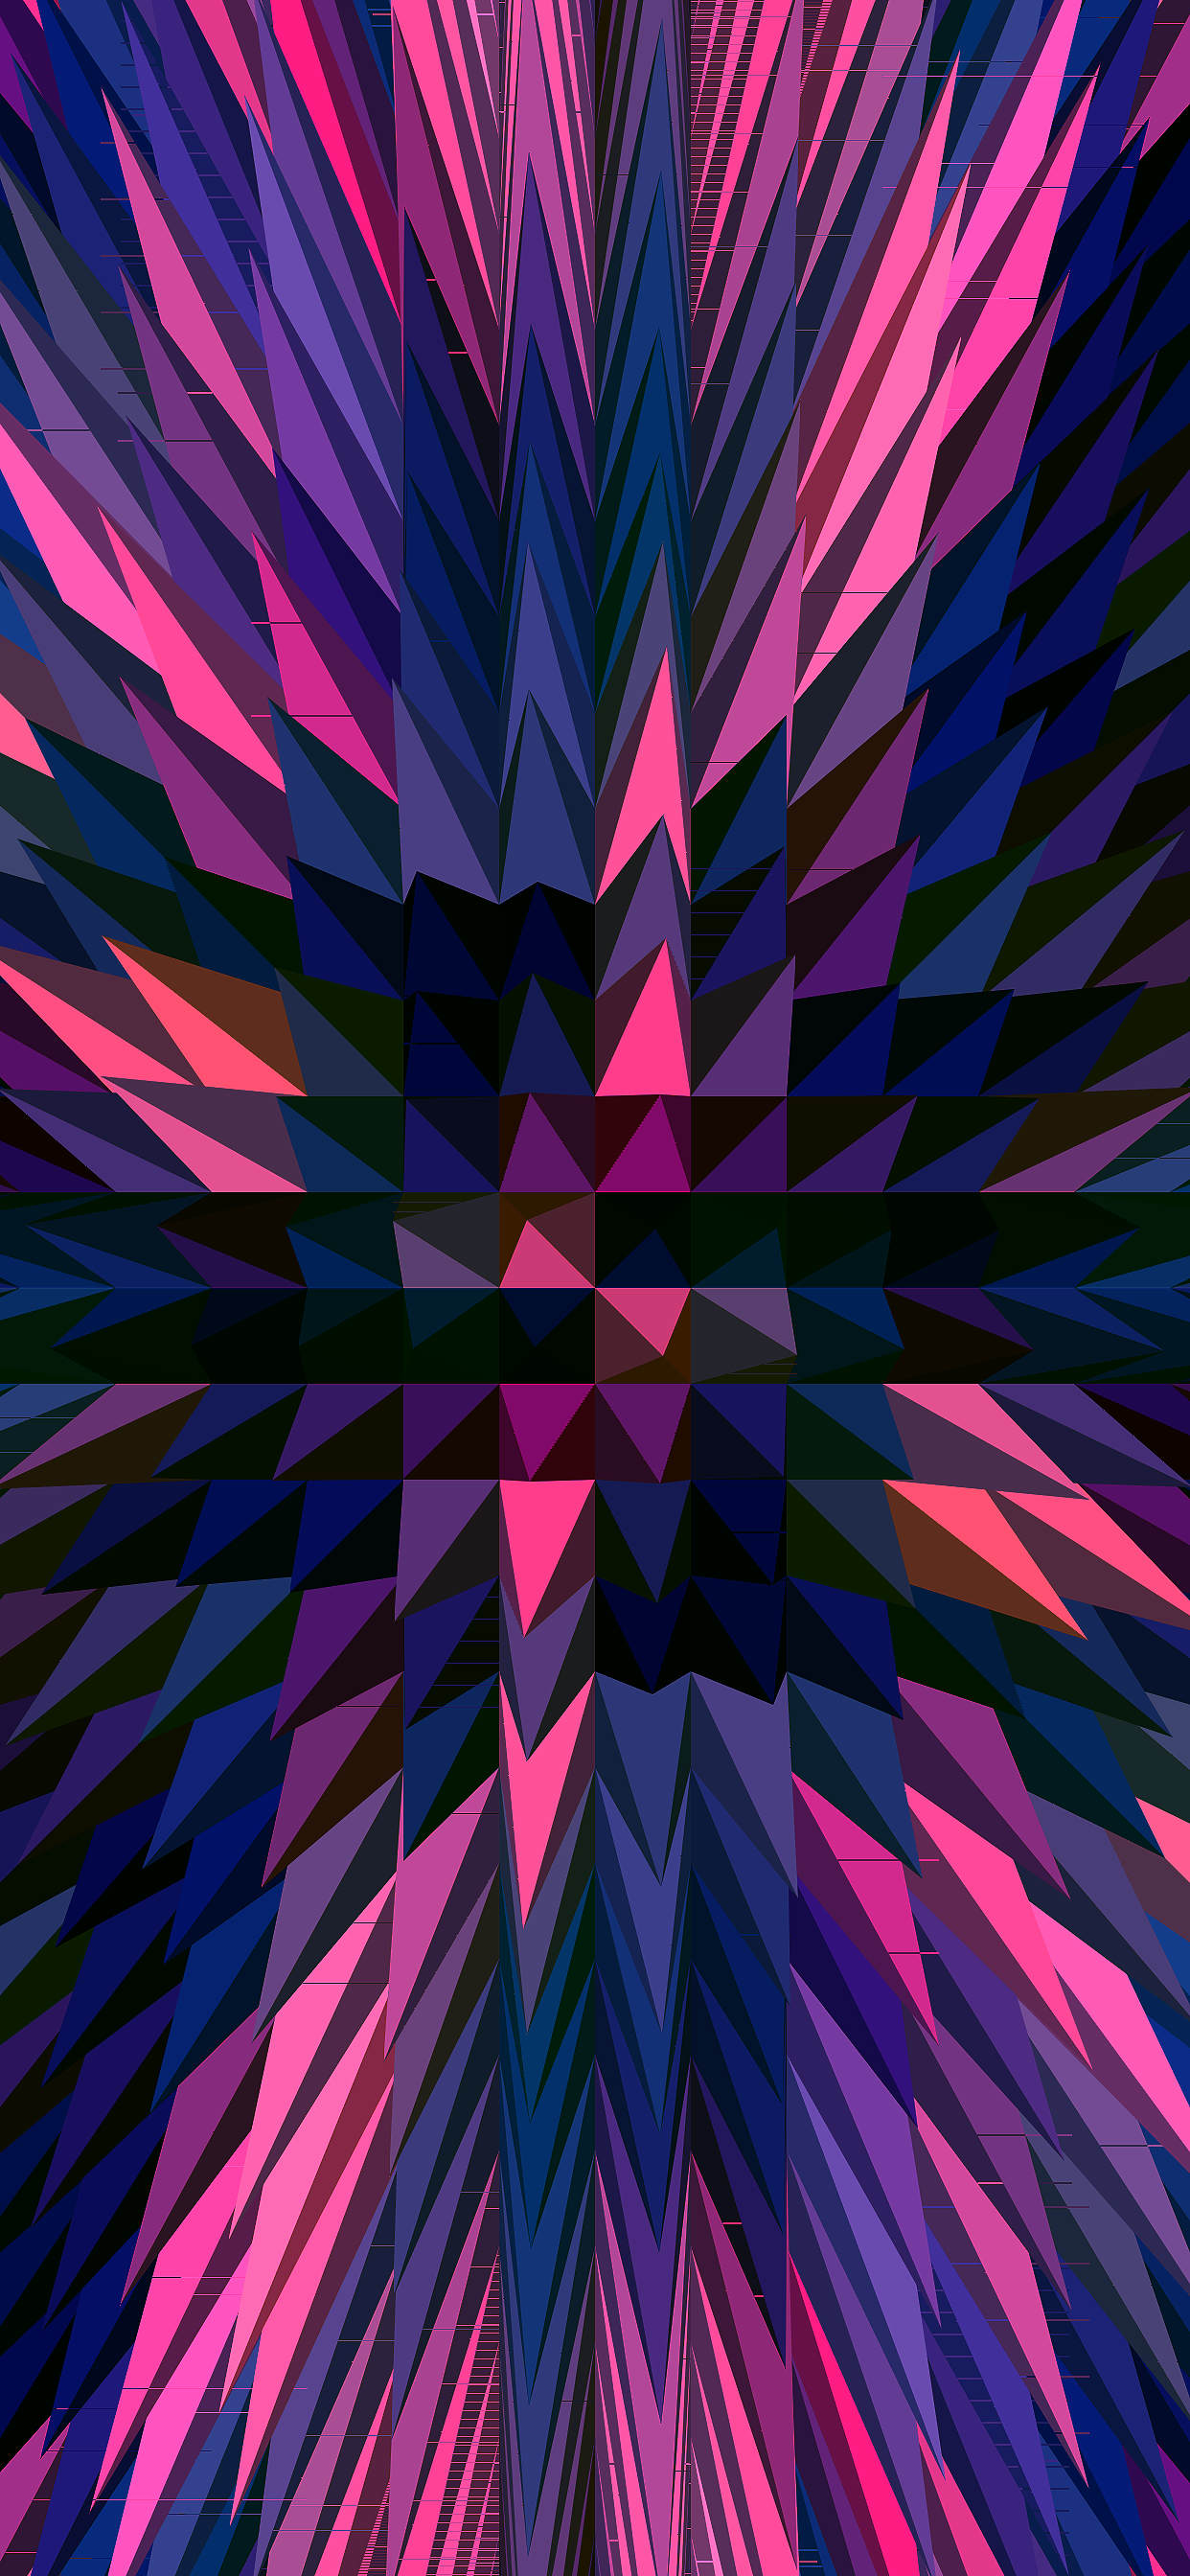 iPhone wallpapers abstractpyramids 3D multicolors Fonds d'écran iPhone du 05/03/2019